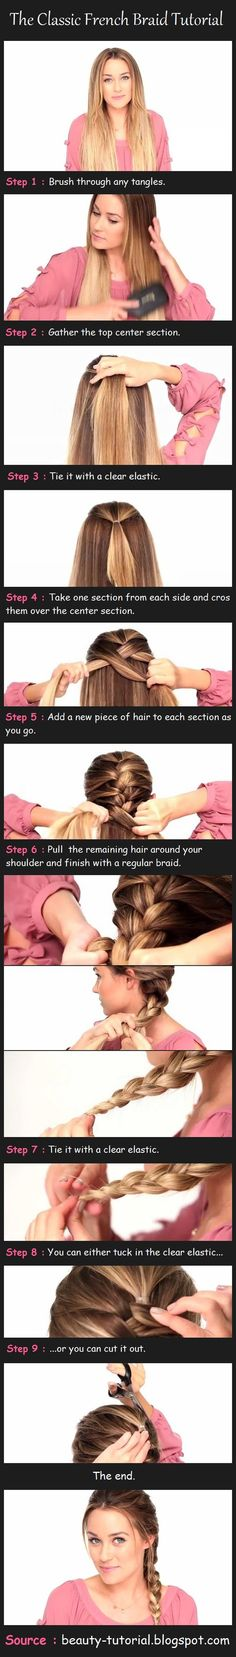 DIY Classic French Braid Hairstyle